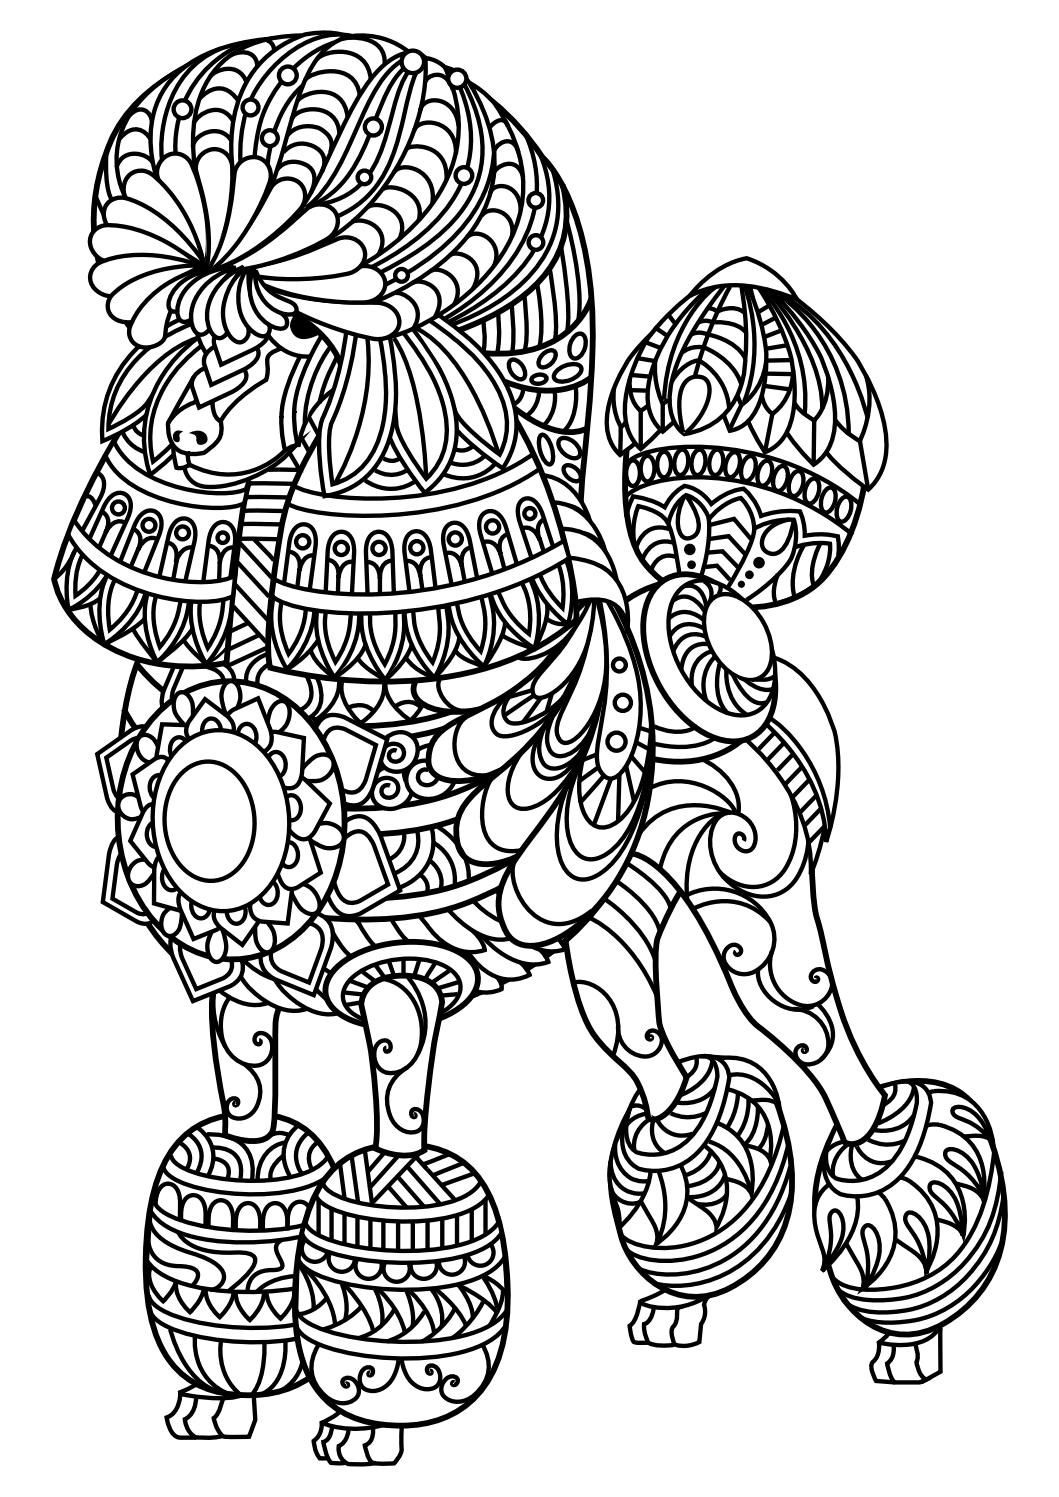 animal coloring pages pdf coloring animals colores p ginas para colorear mandalas. Black Bedroom Furniture Sets. Home Design Ideas